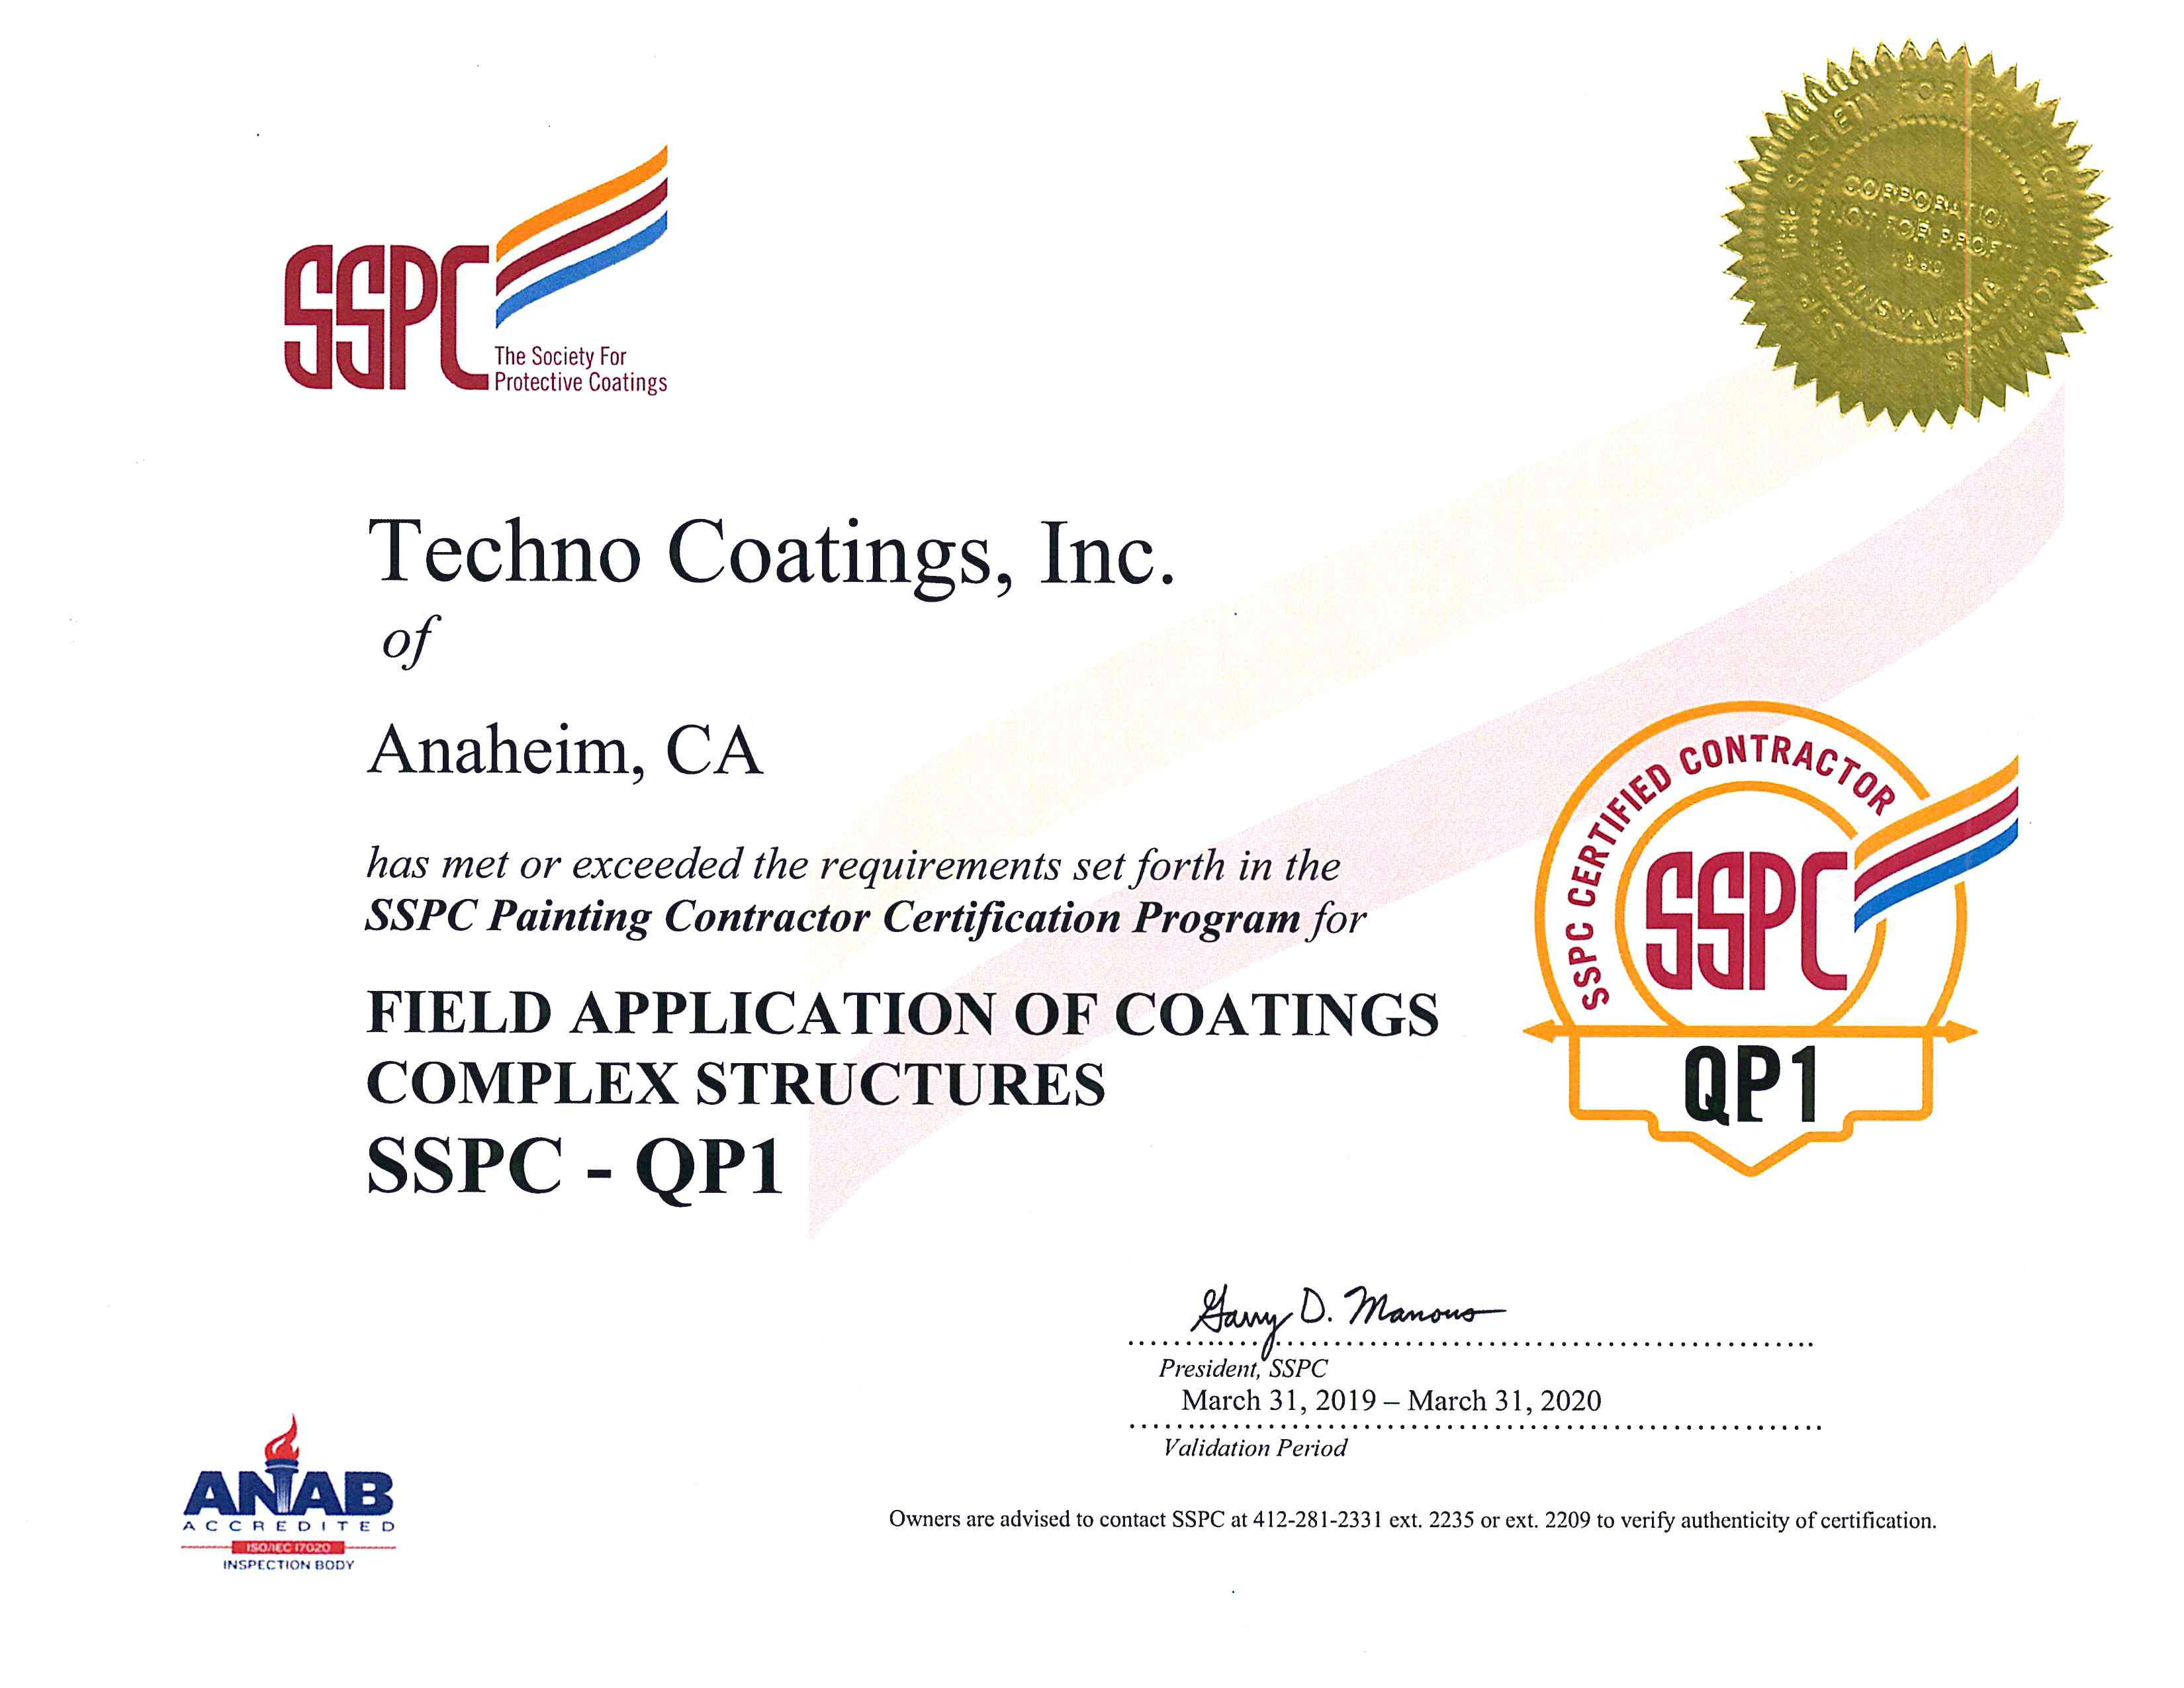 Techno Coatings SSPC QP1